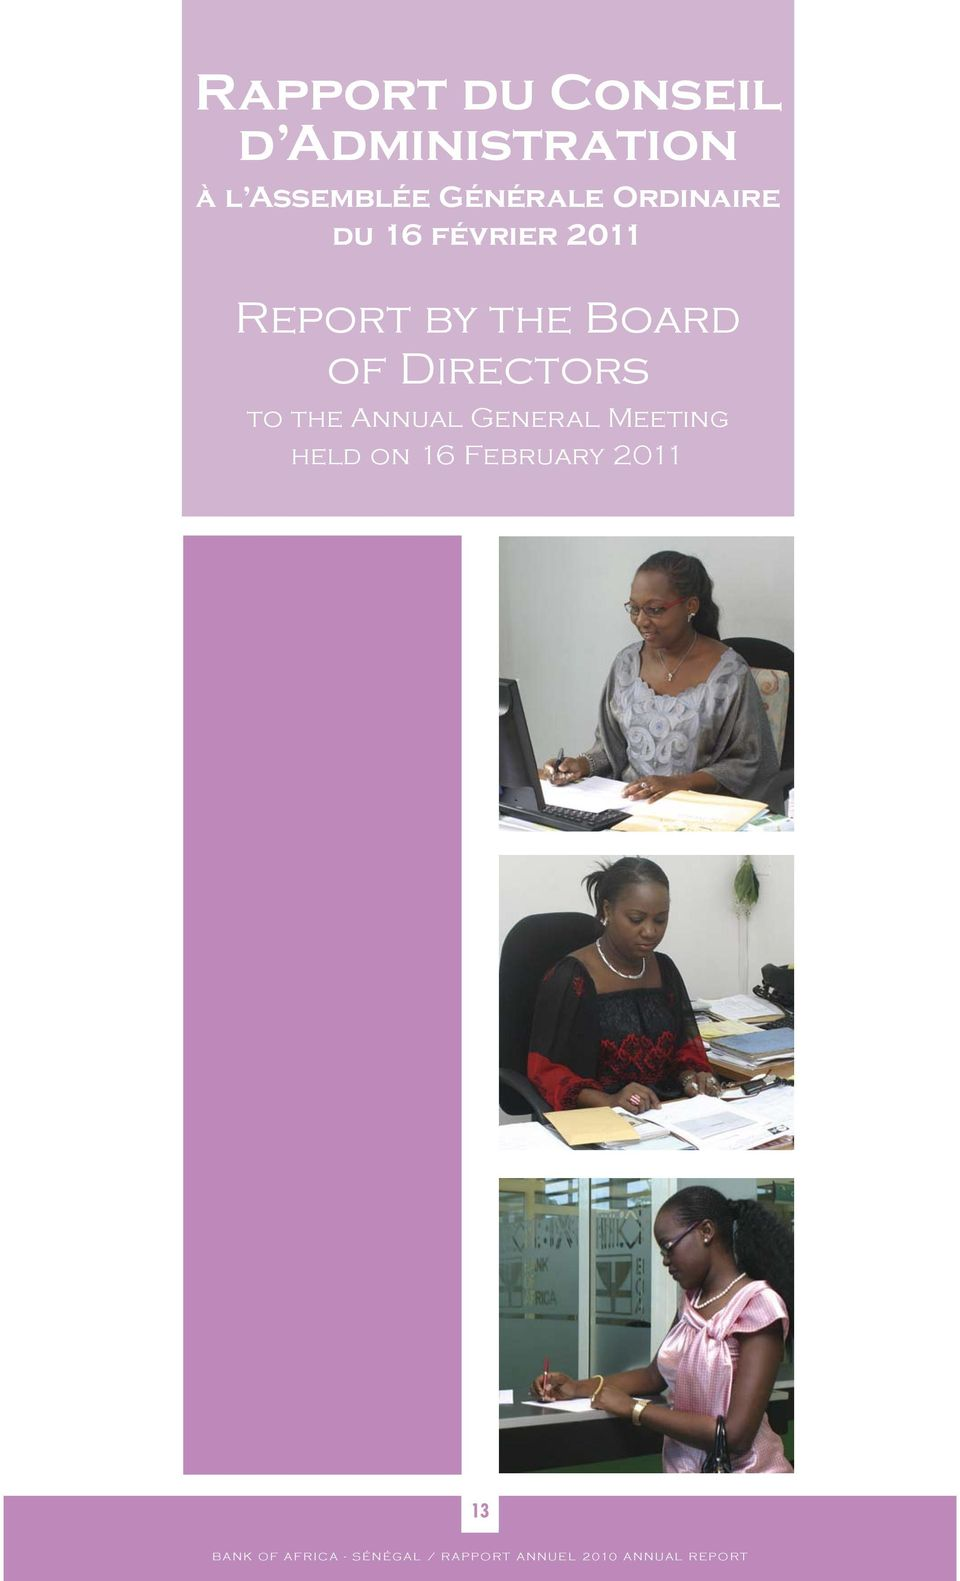 2011 Report by the Board of Directors to the